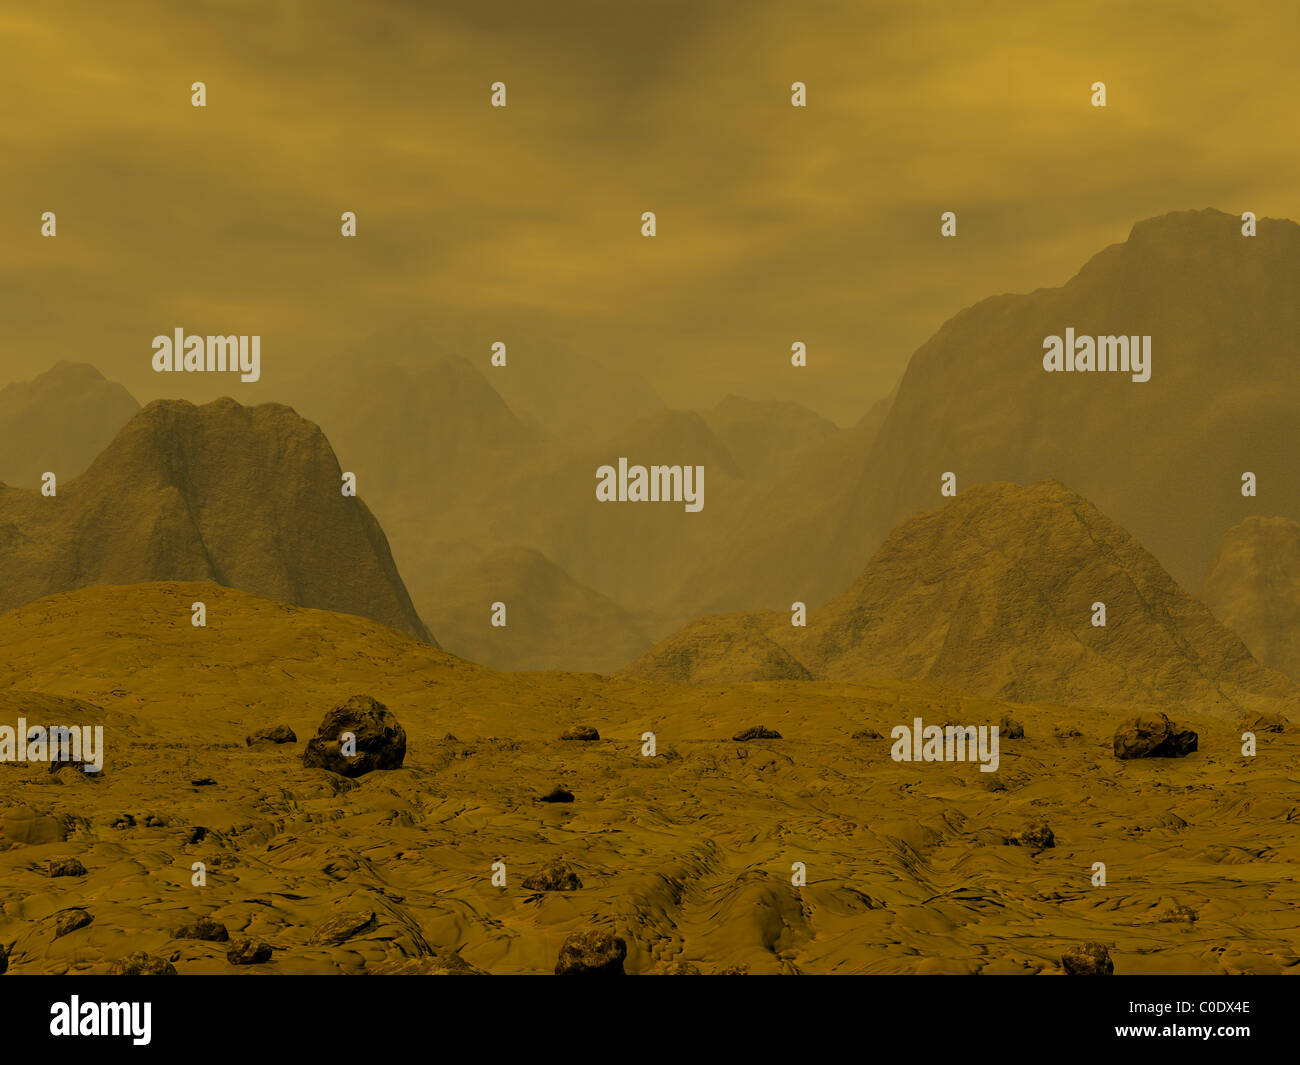 Artist's concept of the surface of Venus. - Stock Image